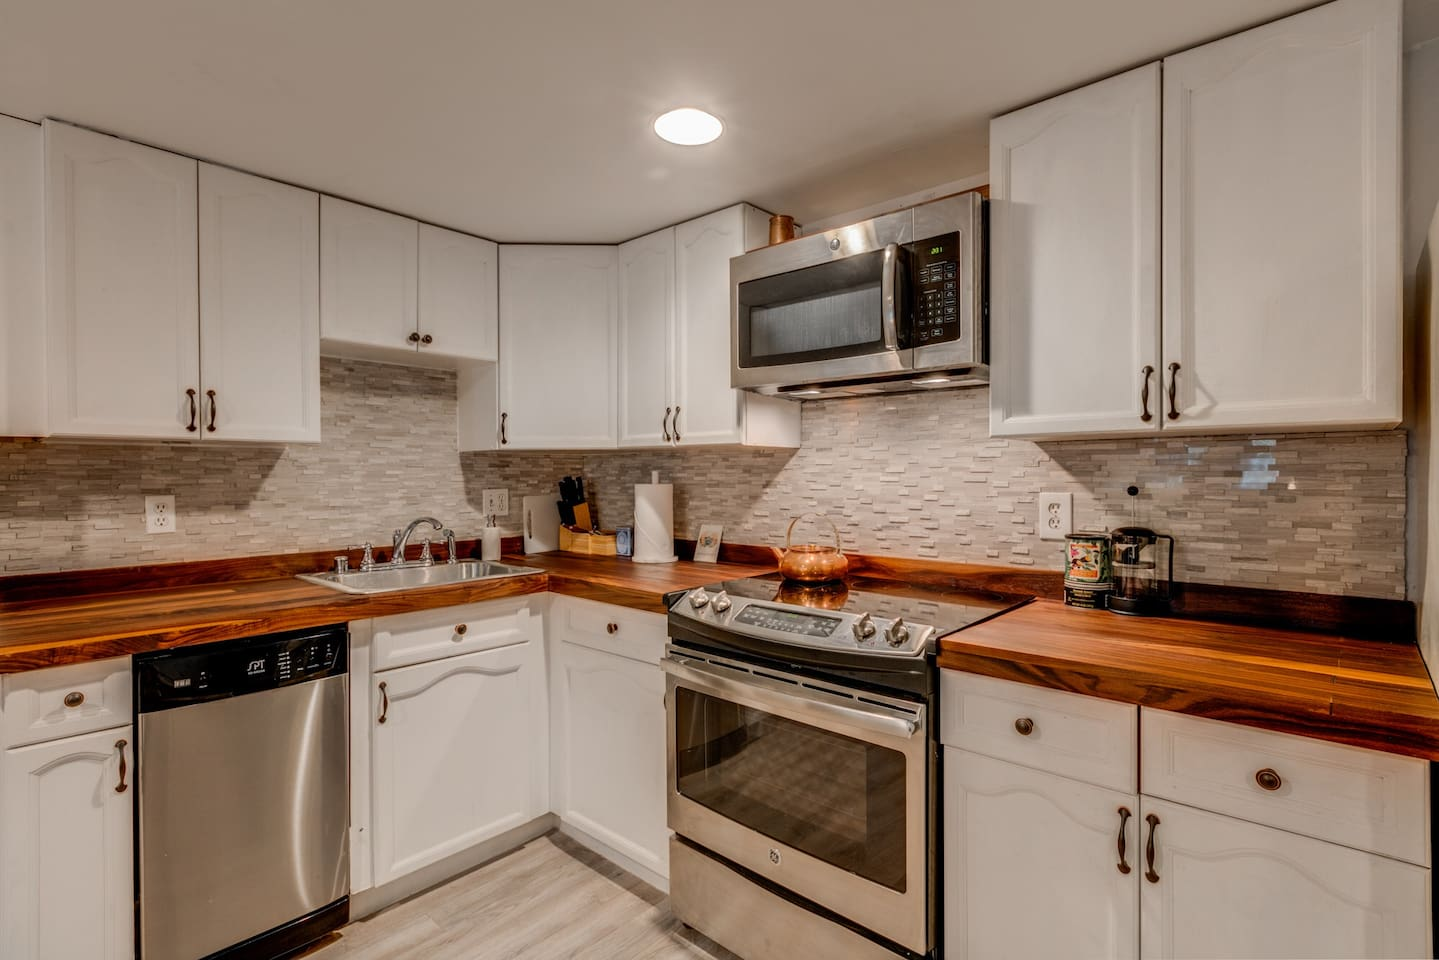 Fully equipped kitchen with handmade black walnut counter tops.